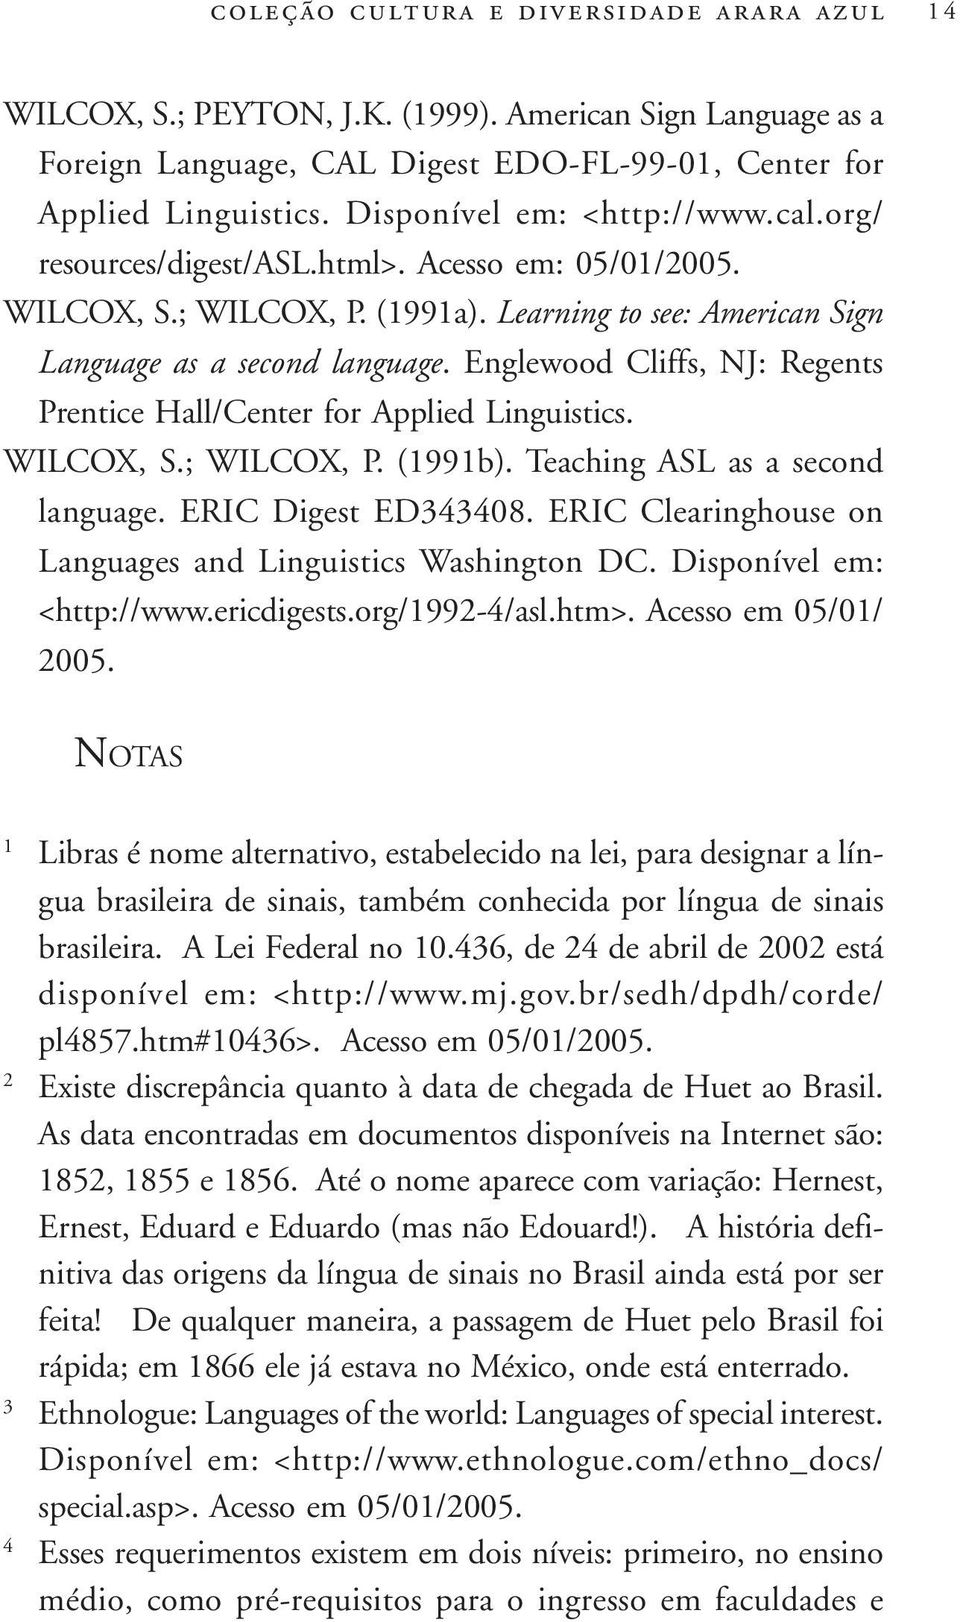 Englewood Cliffs, NJ: Regents Prentice Hall/Center for Applied Linguistics. WILCOX, S.; WILCOX, P. (1991b). Teaching ASL as a second language. ERIC Digest ED343408.